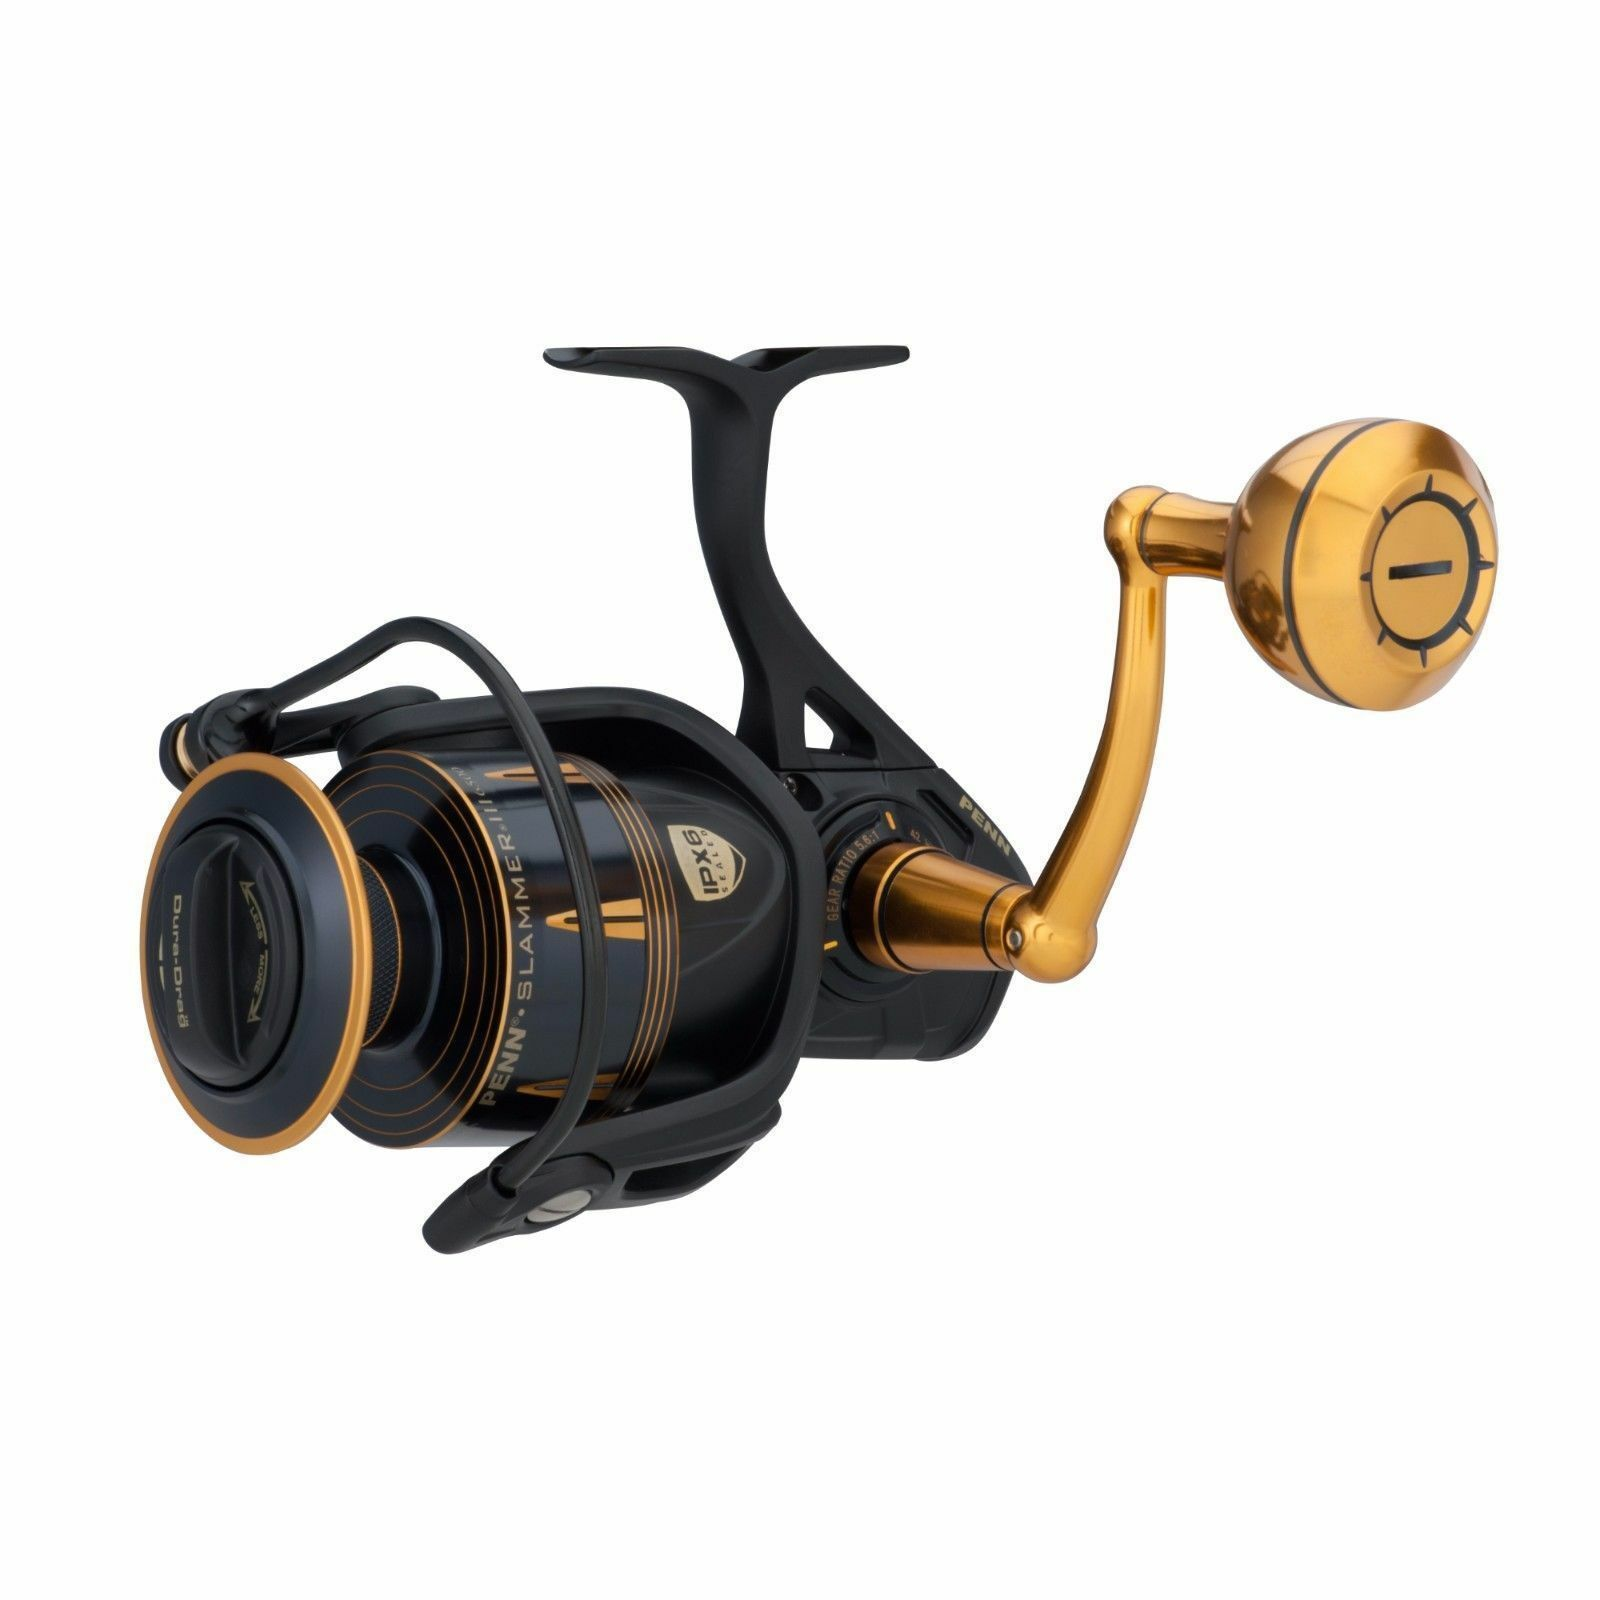 2017 NEW PENN SLAMMER III - Ultimate Saltwater Spinning Reel - Sizes 7500